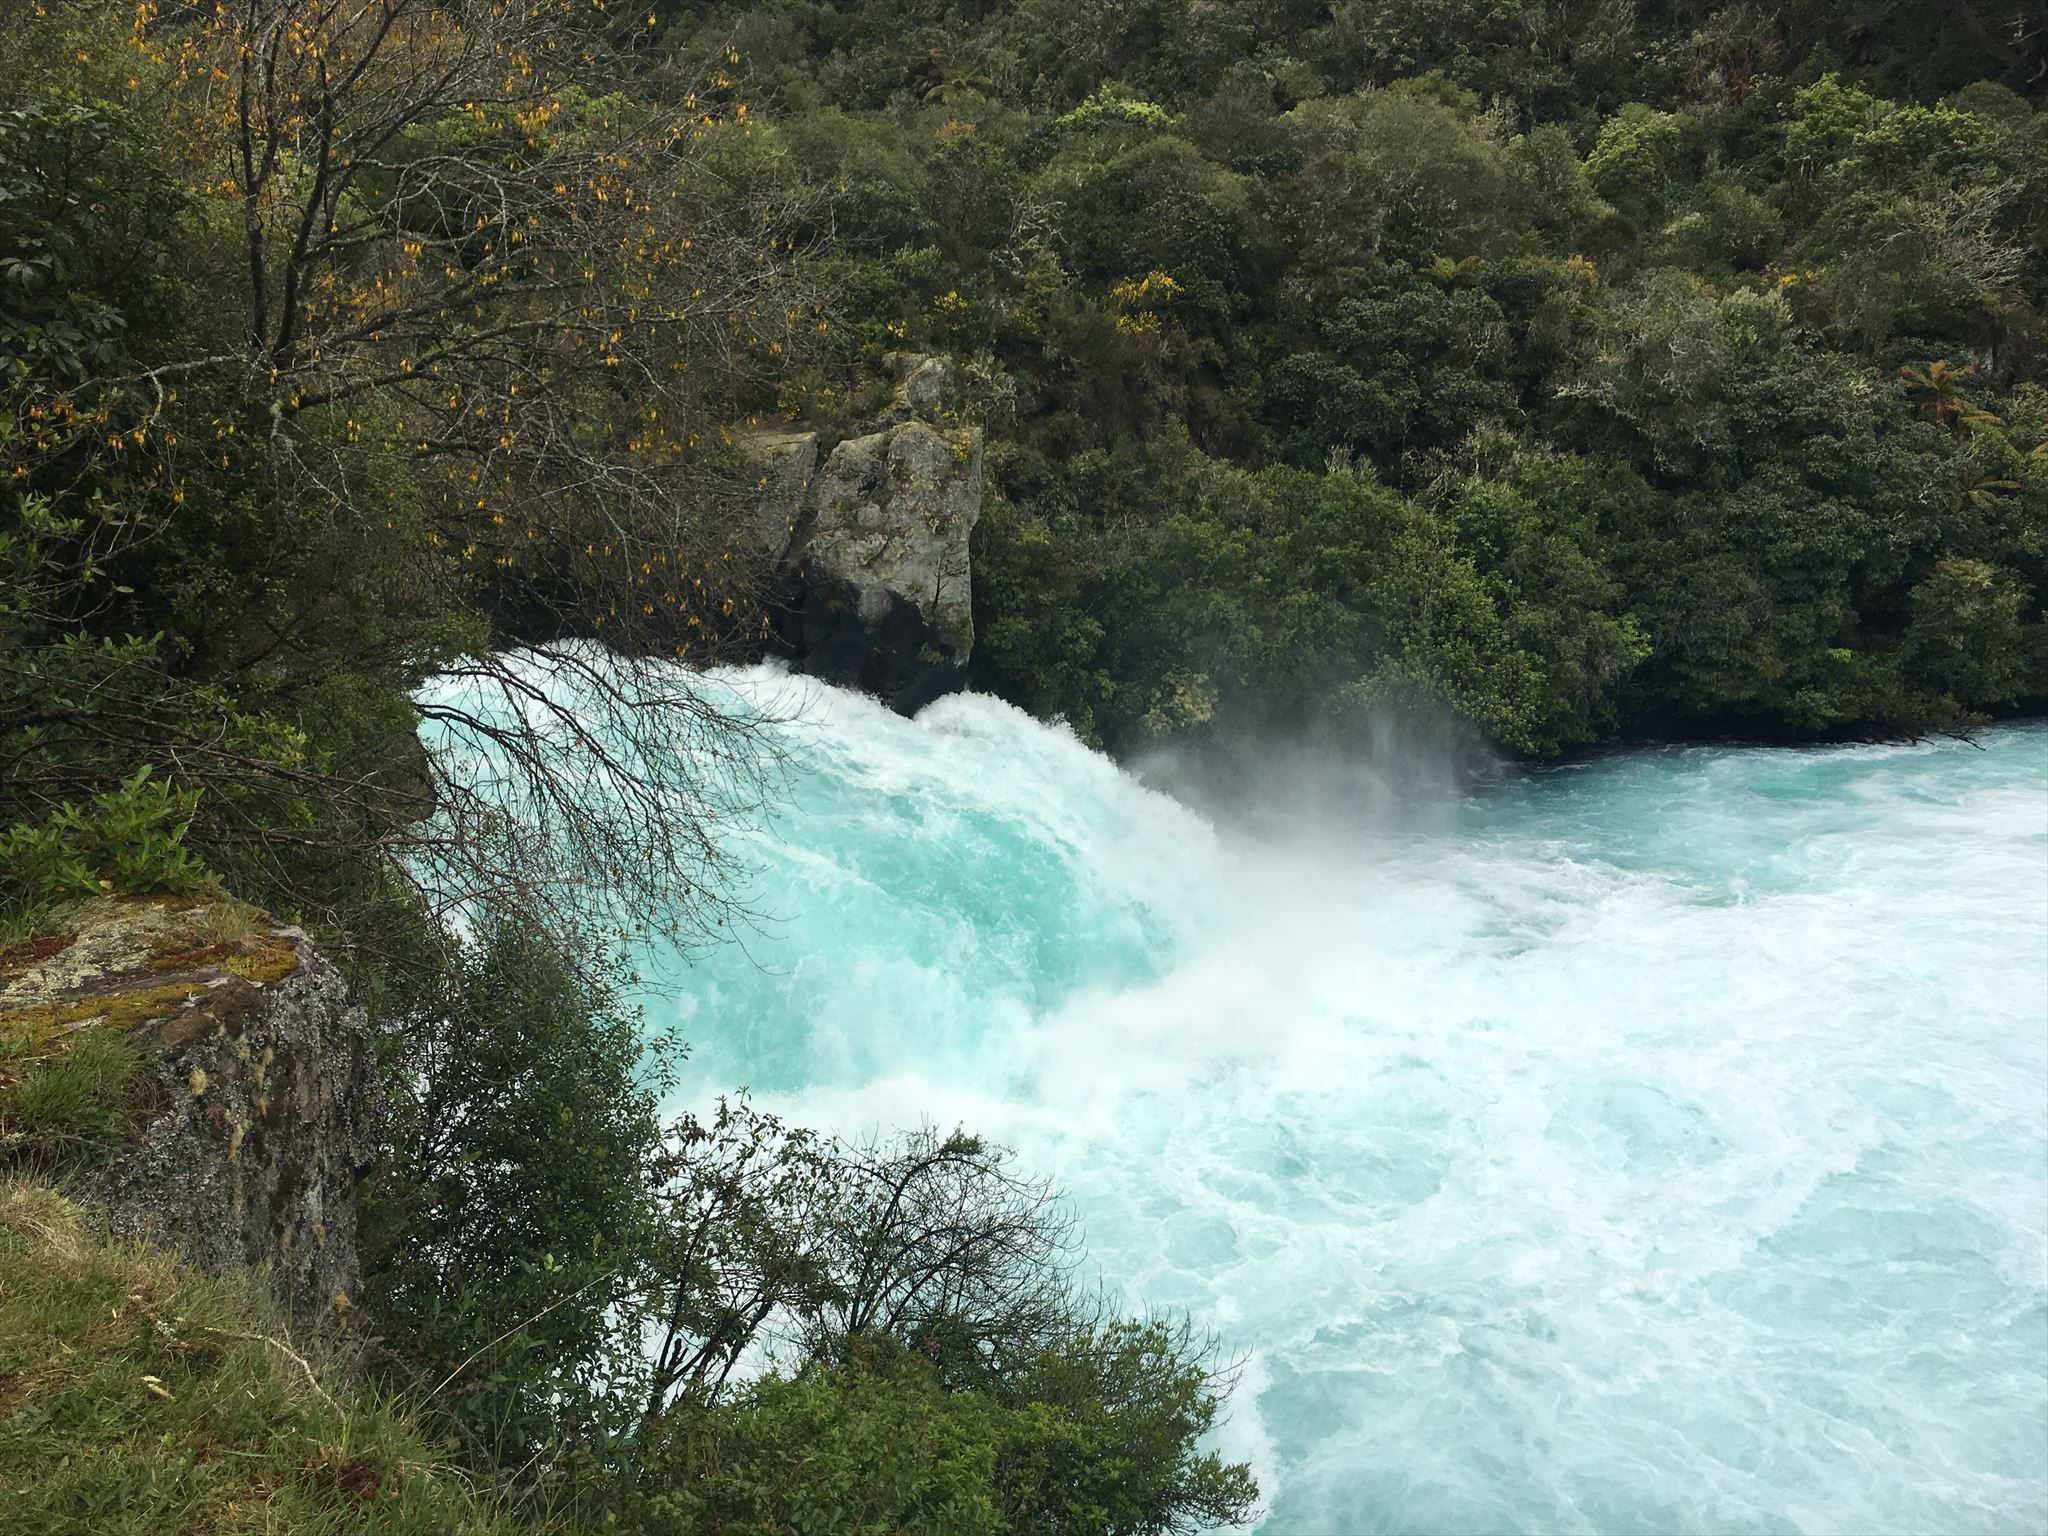 Huka Falls (Central Plateau) – Geocache of the Week